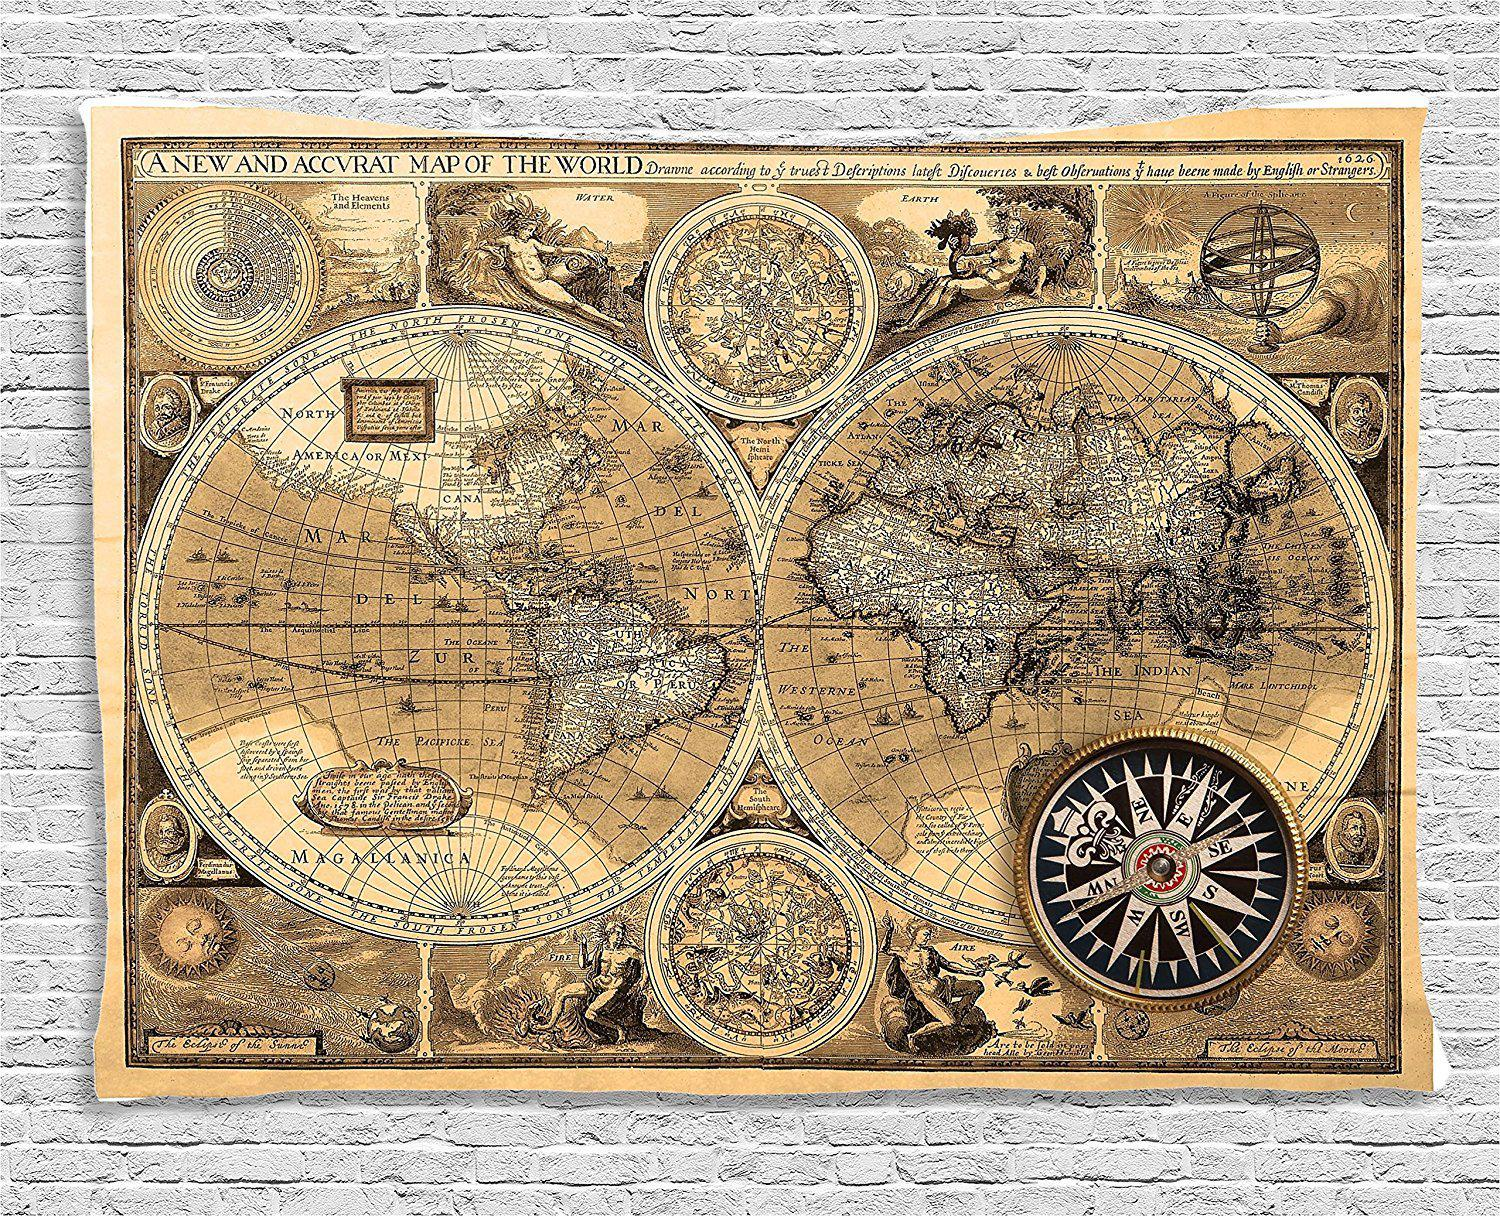 Vintage 1600 historical manuscript map fabric wall tapestry vintage 1600 historical manuscript map fabric wall tapestry gogetglam gumiabroncs Gallery